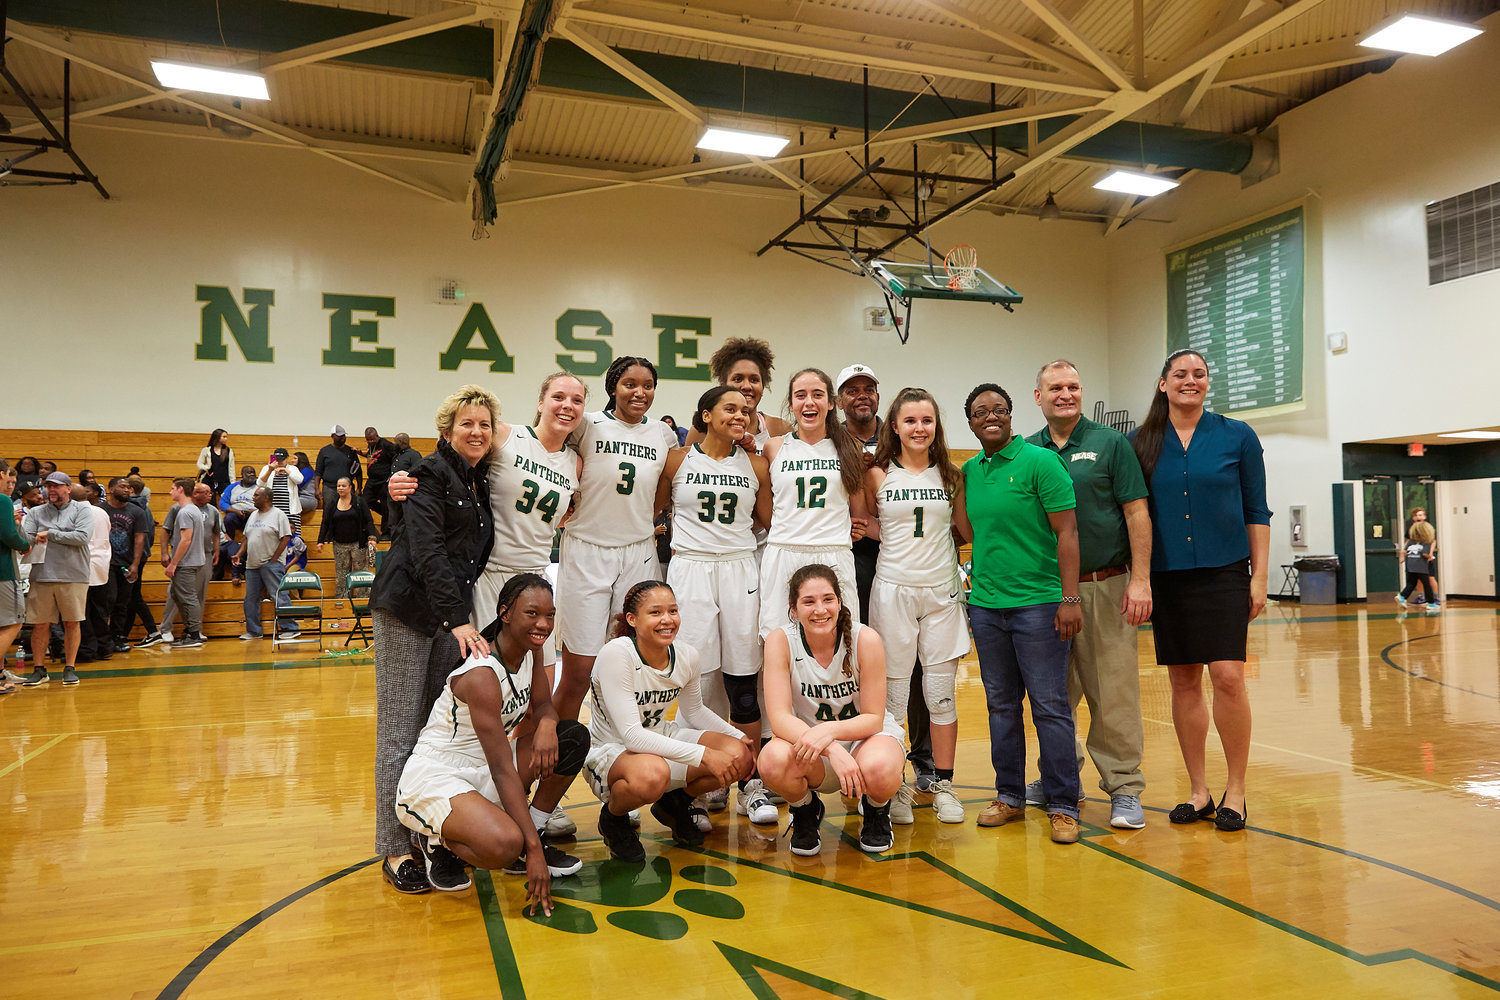 The Nease girls basketball team gathers after beating Booker T. Washington in the regional finals on Feb. 22 at home. The team narrowly lost in the state title to Dillard, 43-40, on March 2 in Lakeland.